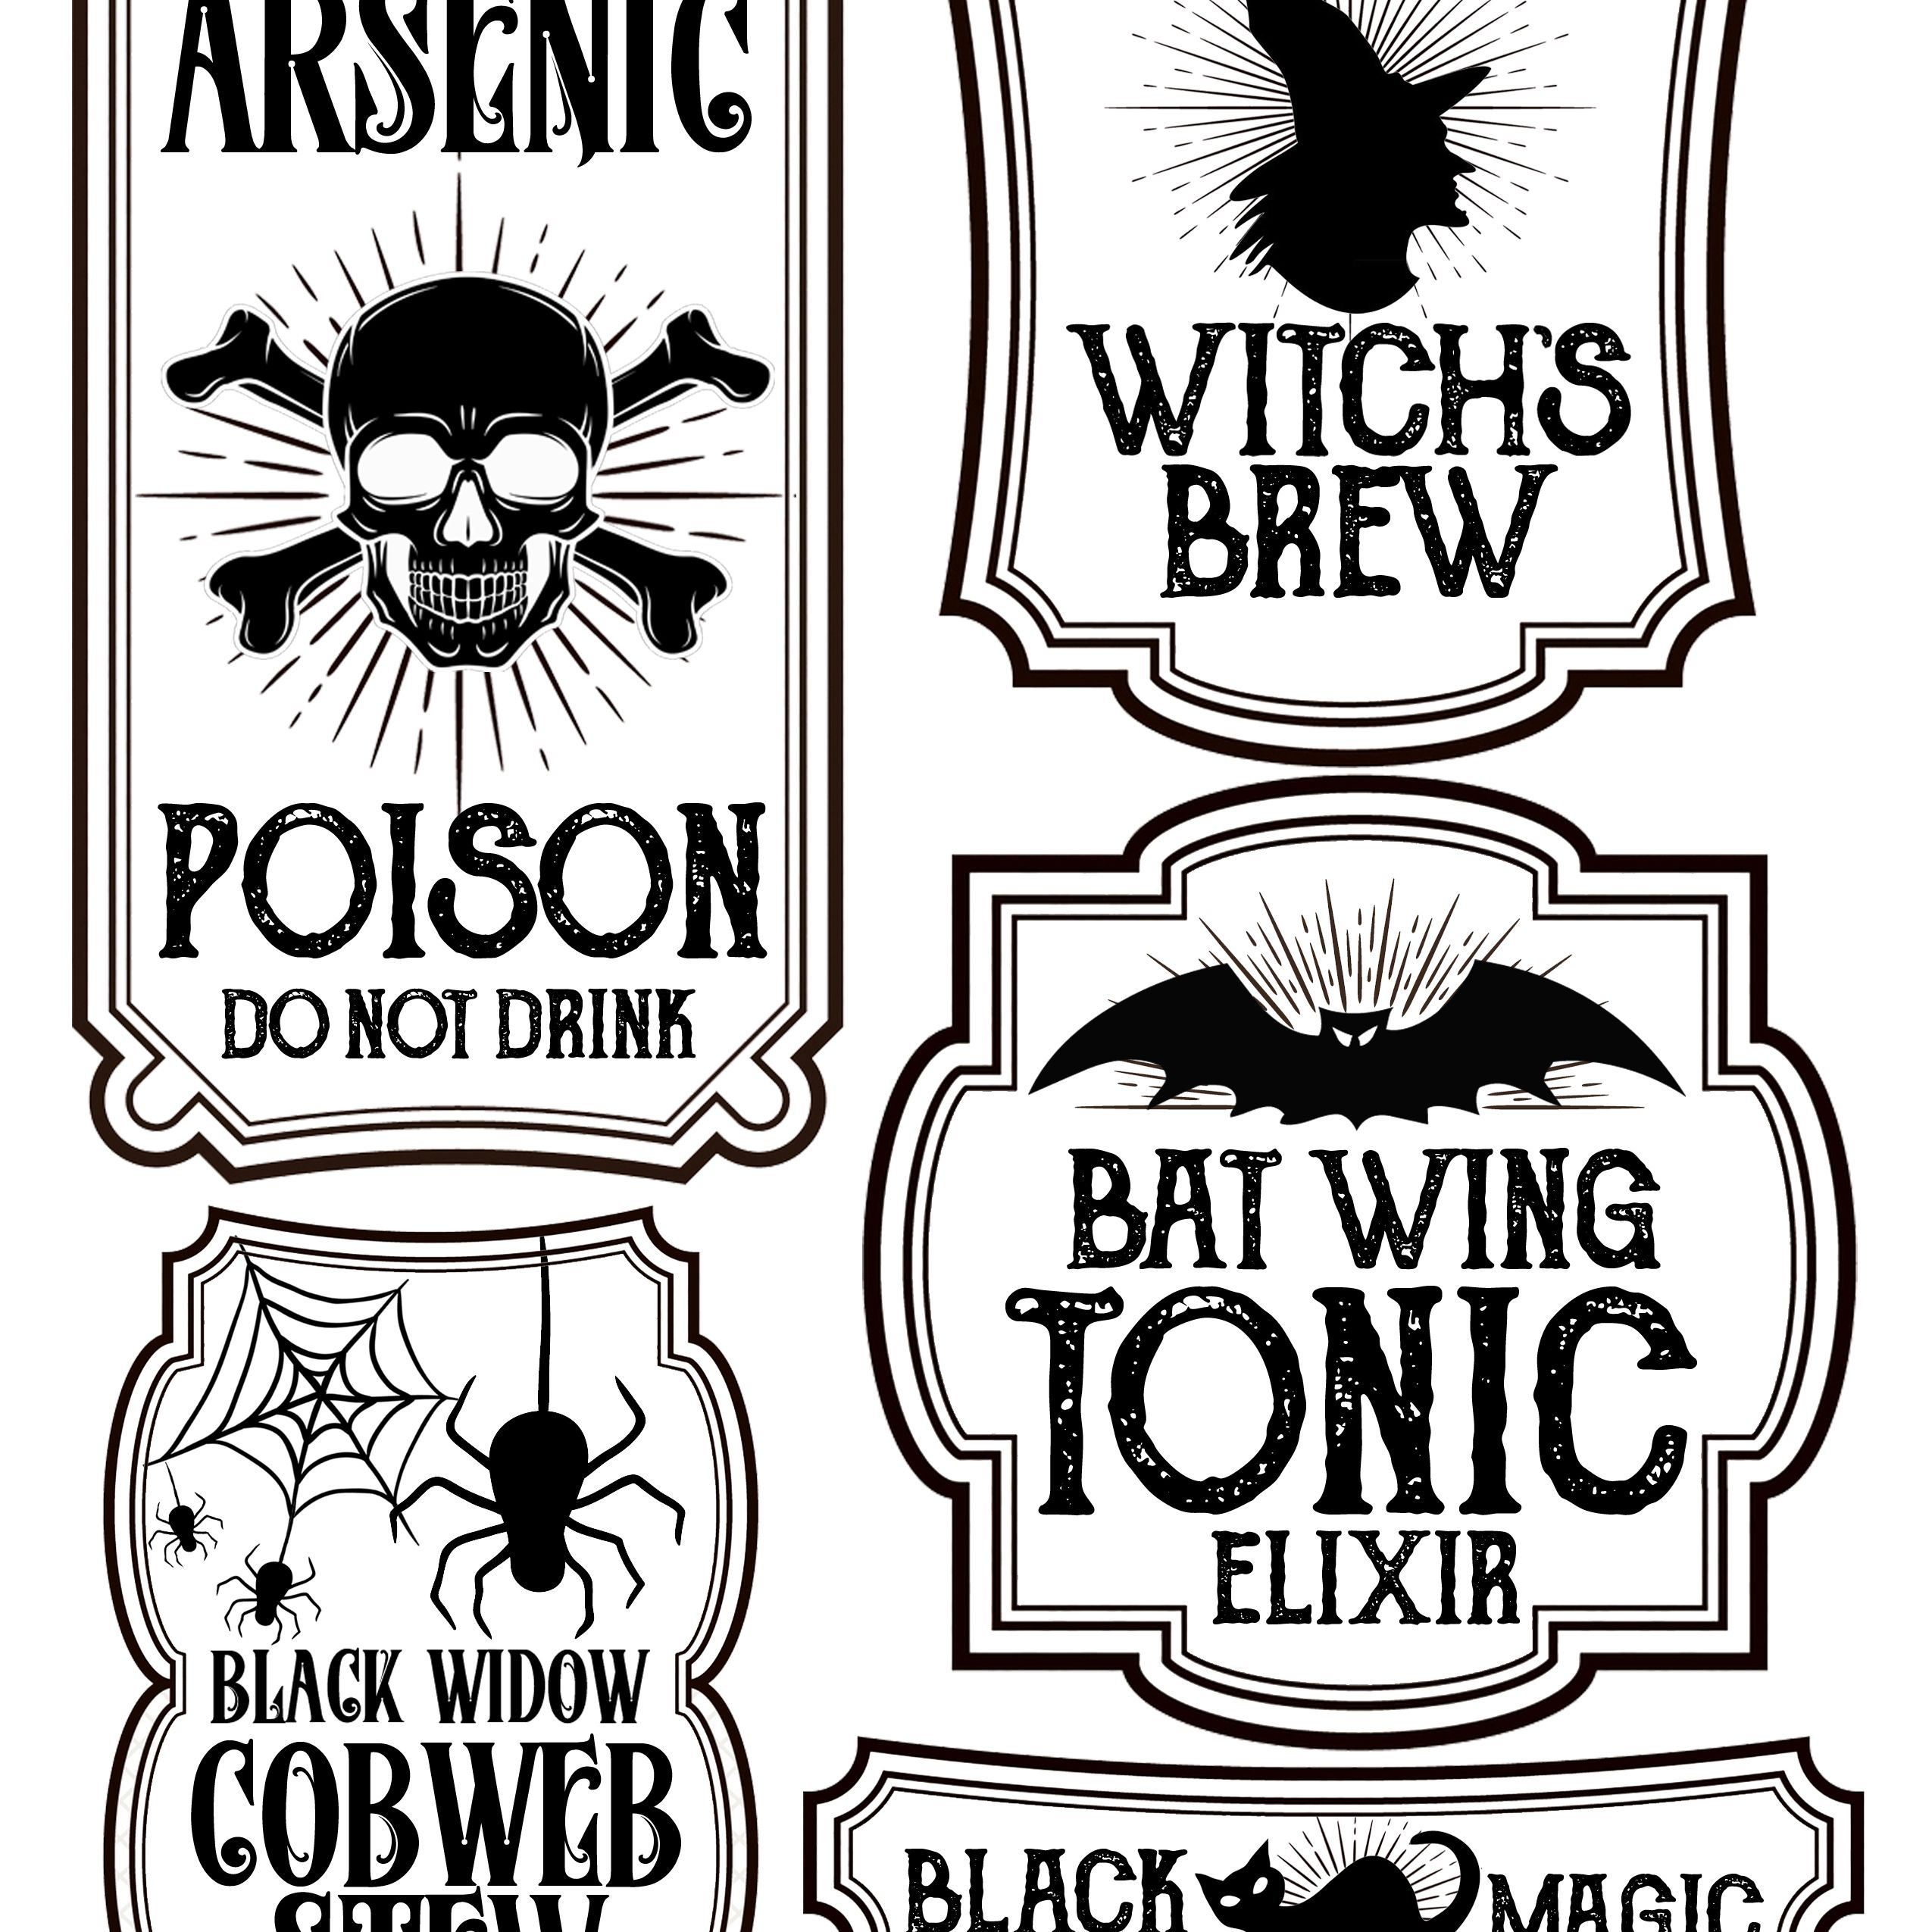 Halloween Bottle Labels - Free Printables - Potions Labels | Art - Free Printable Potion Labels